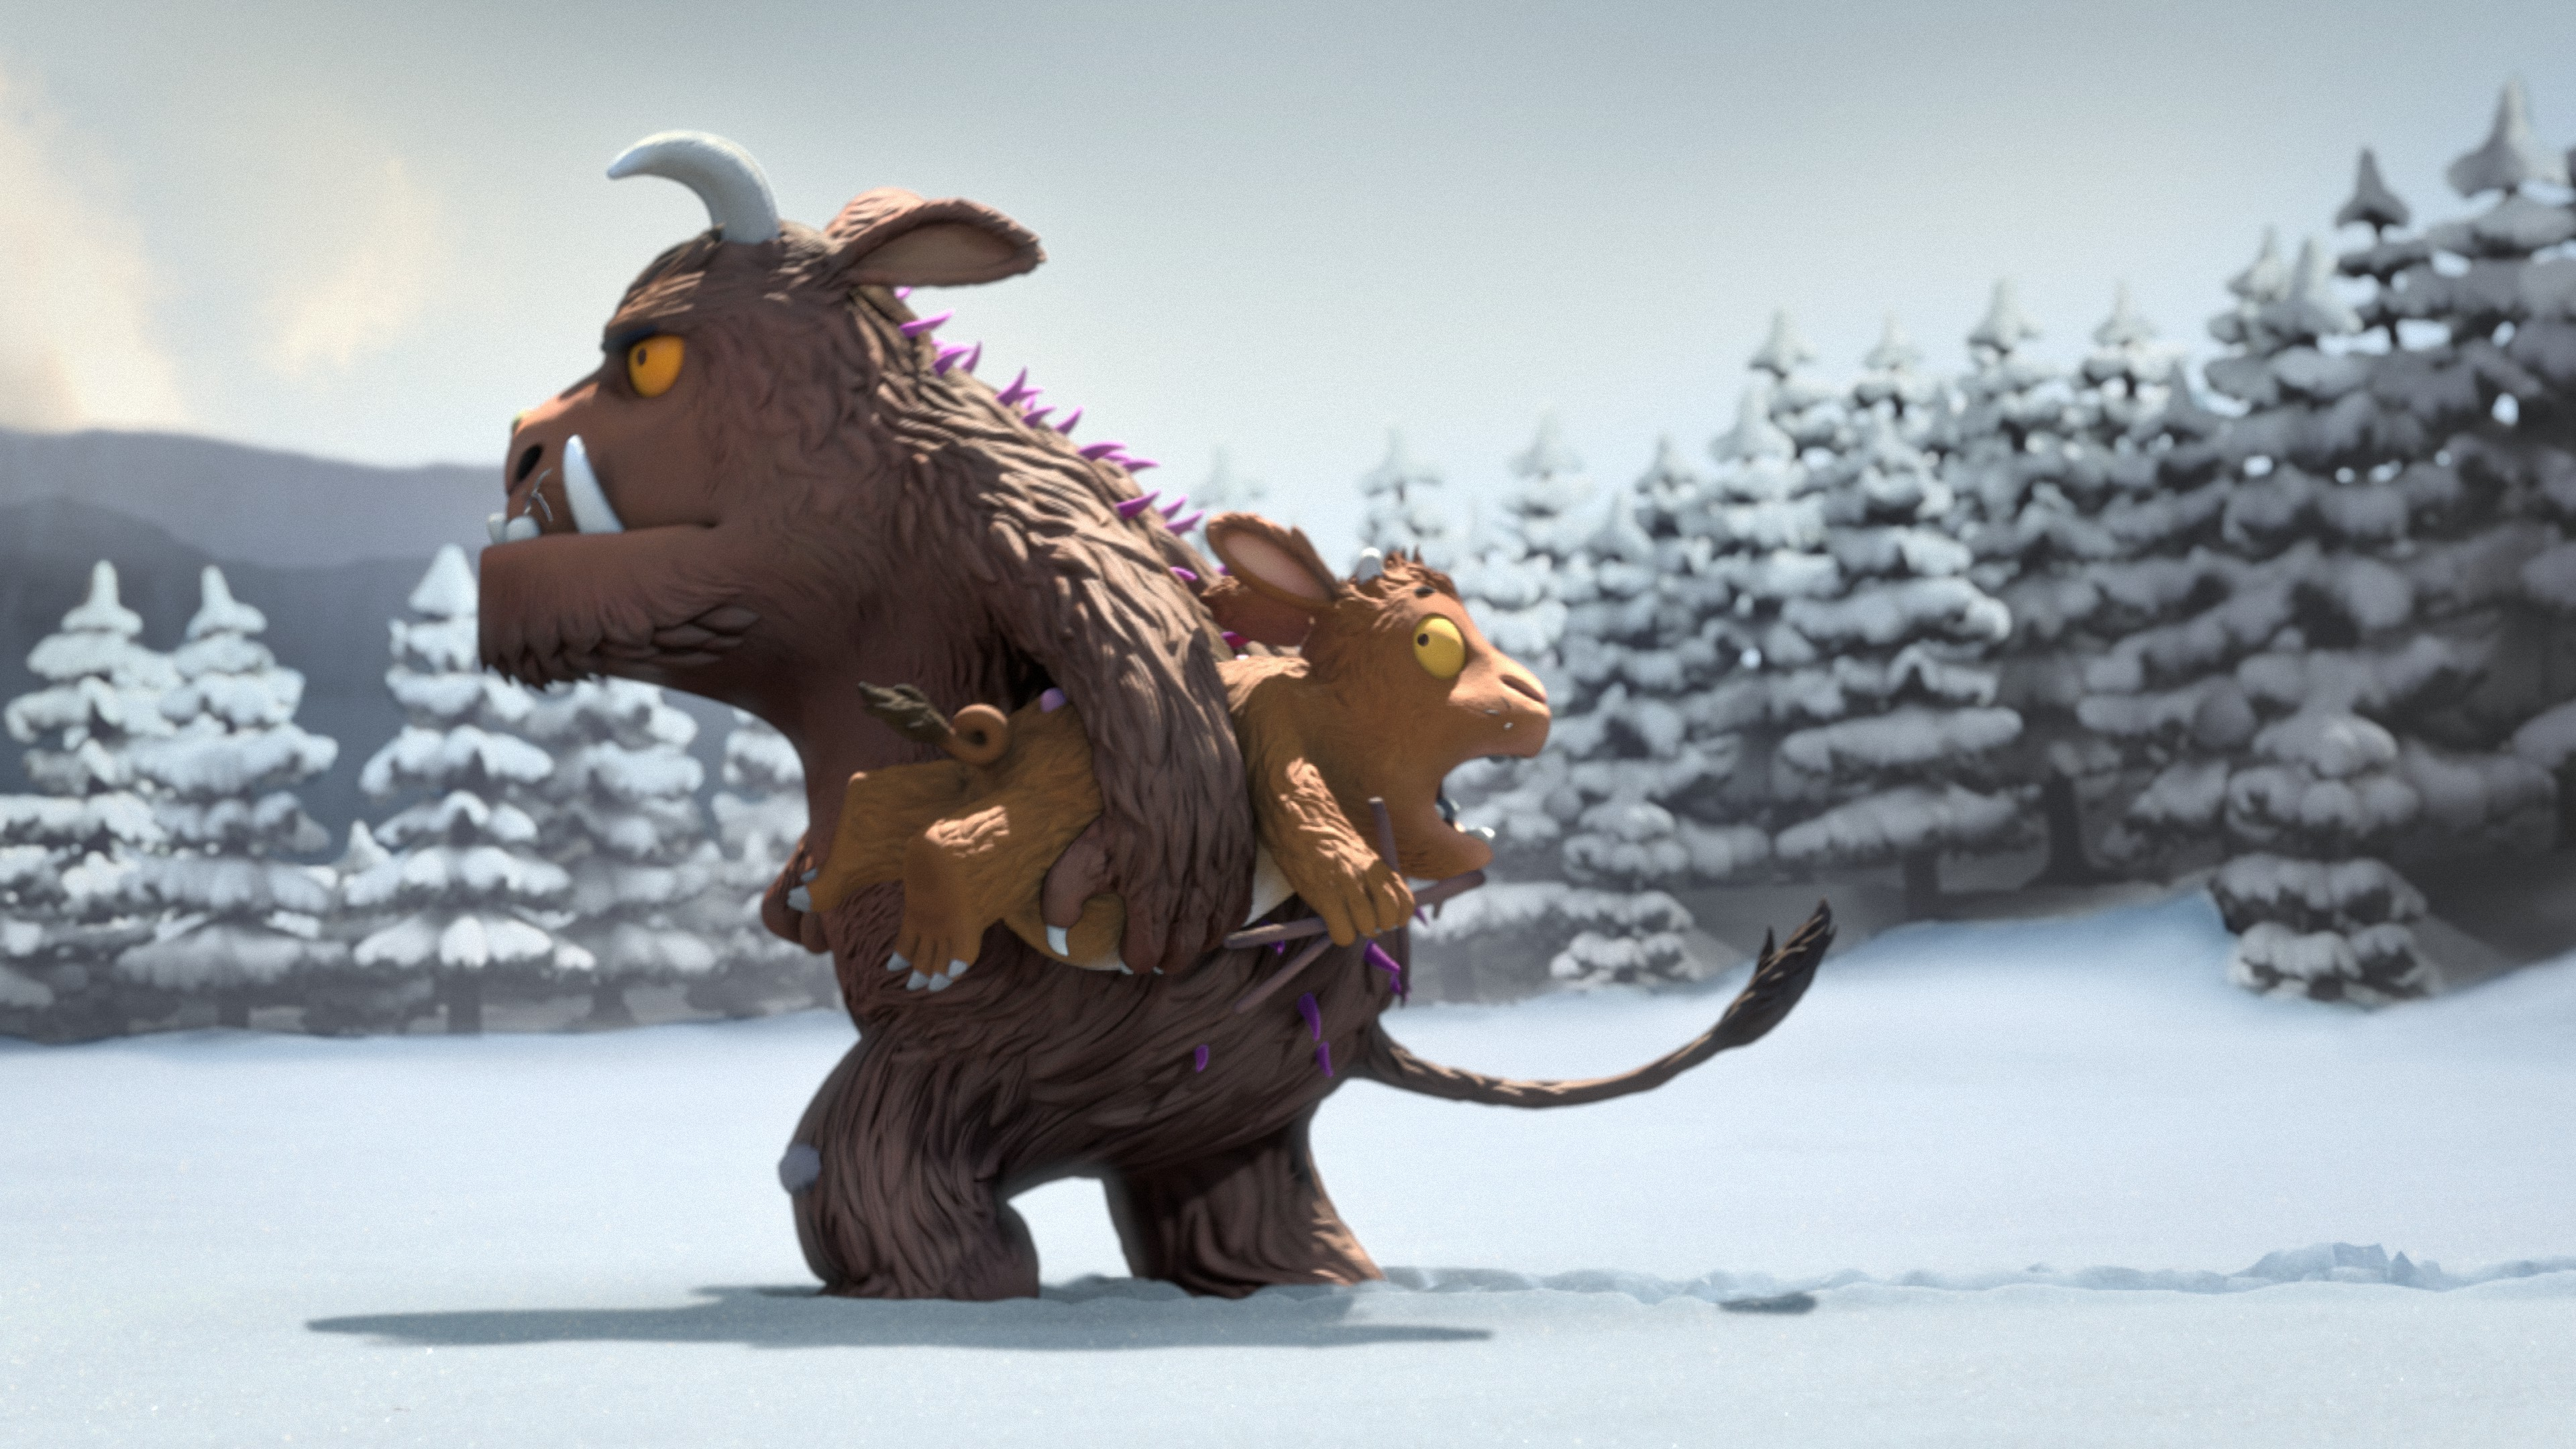 GRUFFALO CARRYING GRUFFALO'S CHILD_S